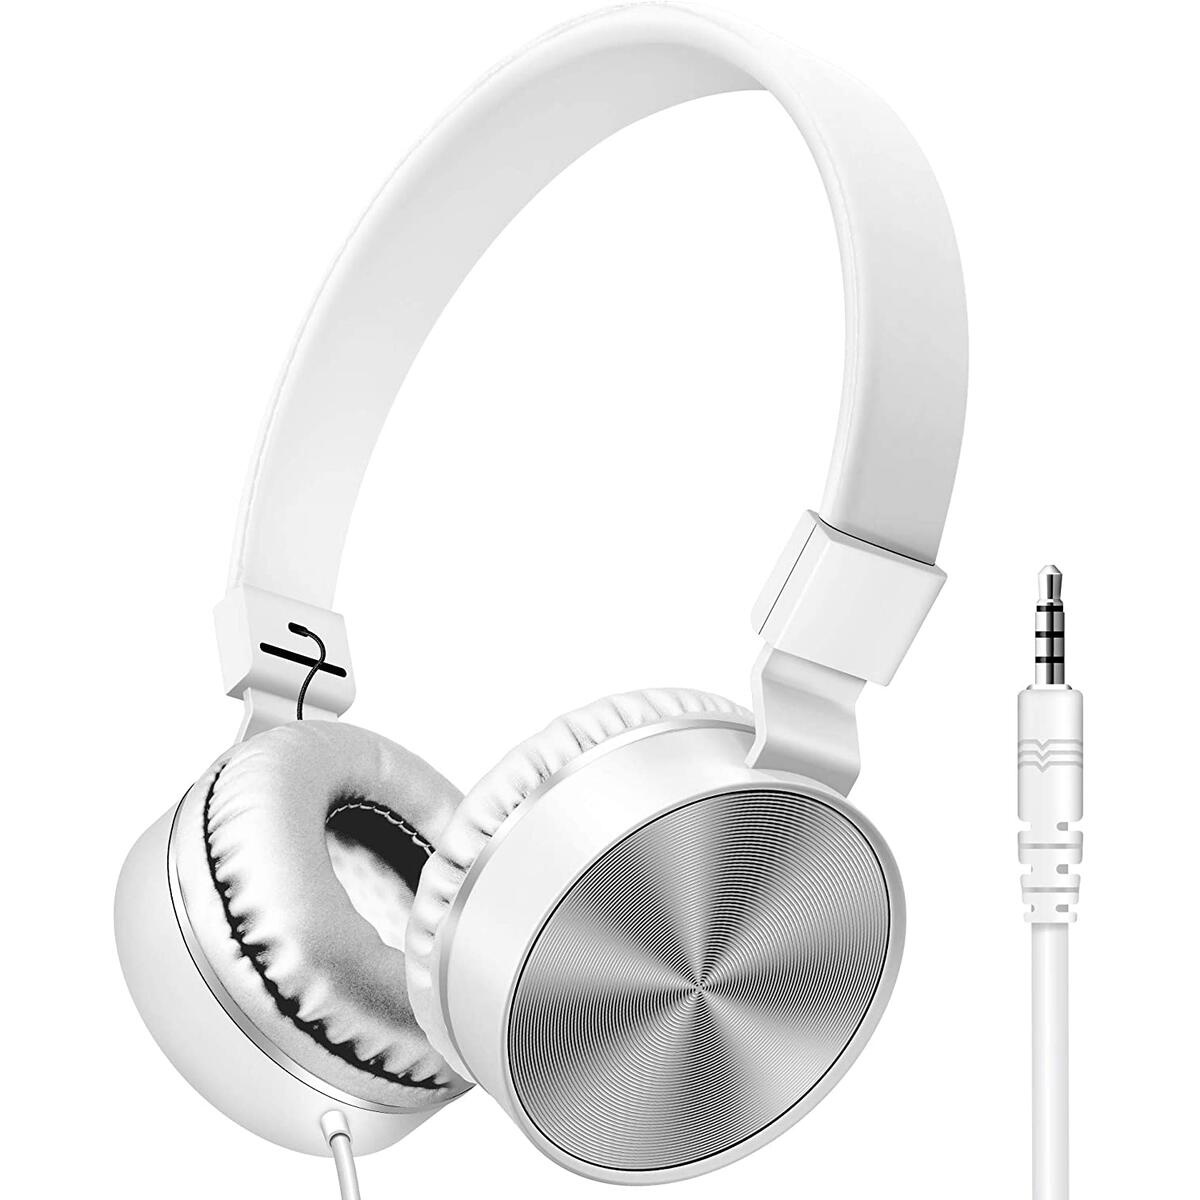 On-Ear Headphones with Built-in Mic, Adjustable Headband, Soft Ear Cushioned Pads, Foldable Design, for Phone or Computer Use (Matte White)